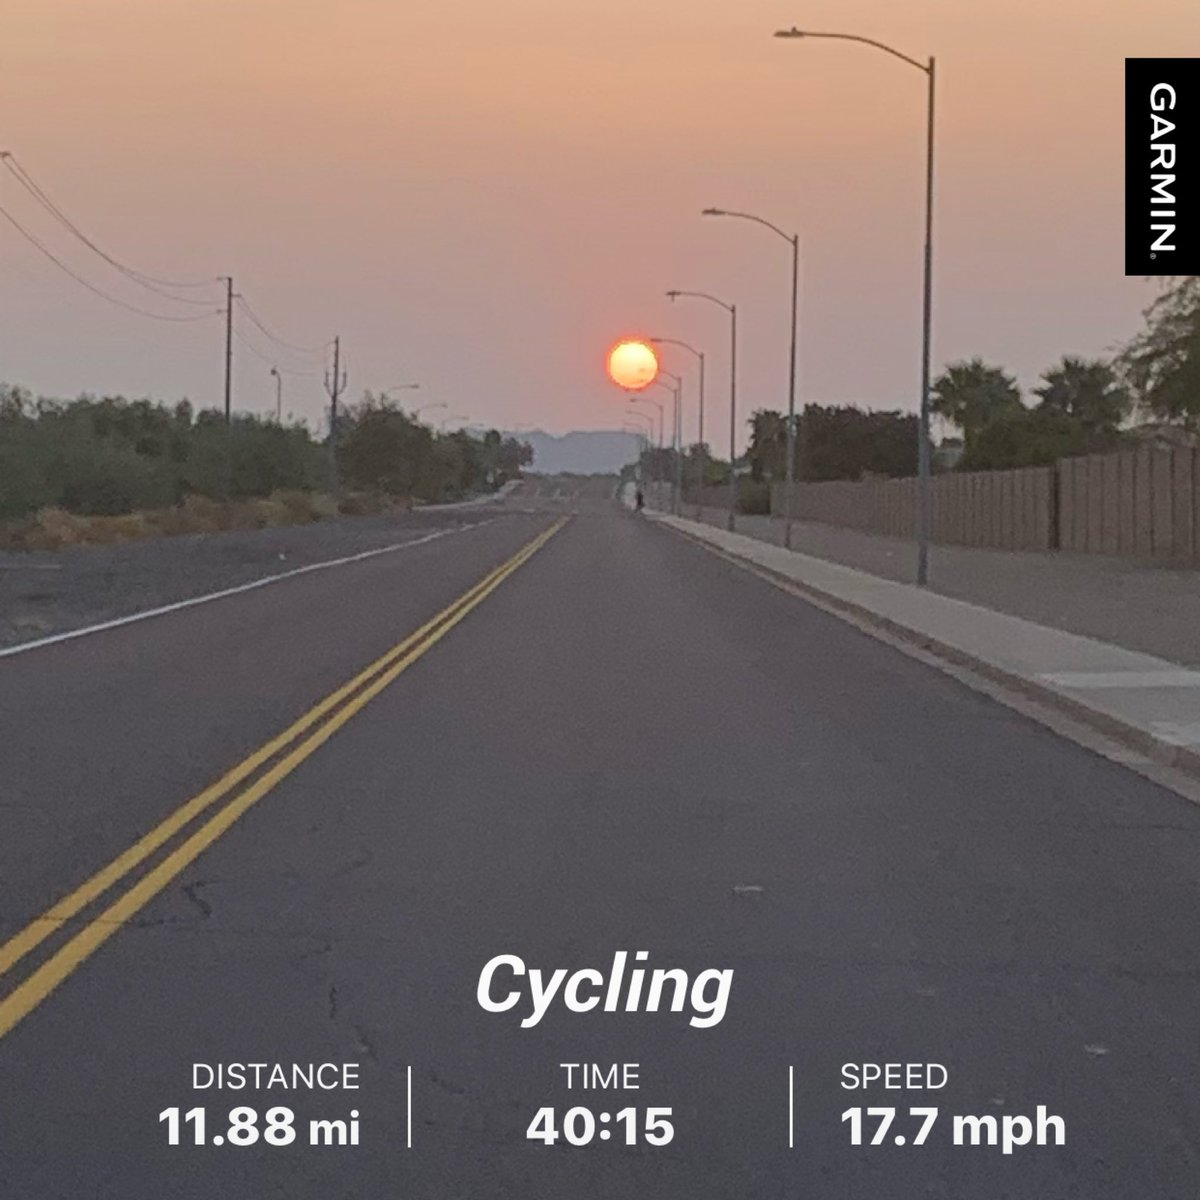 Beat the HEAT!!! I love the clear bike paths of Arizona but have to get out before the 100 degree weather!!! #teamteruel #professionalsuccesssouth #triathlon #running #fitness #swimbikerun #cycling #bike #triathlete #training #ironman #swim #sport #swimming #triathlontraining https://t.co/jy48BGhvB3